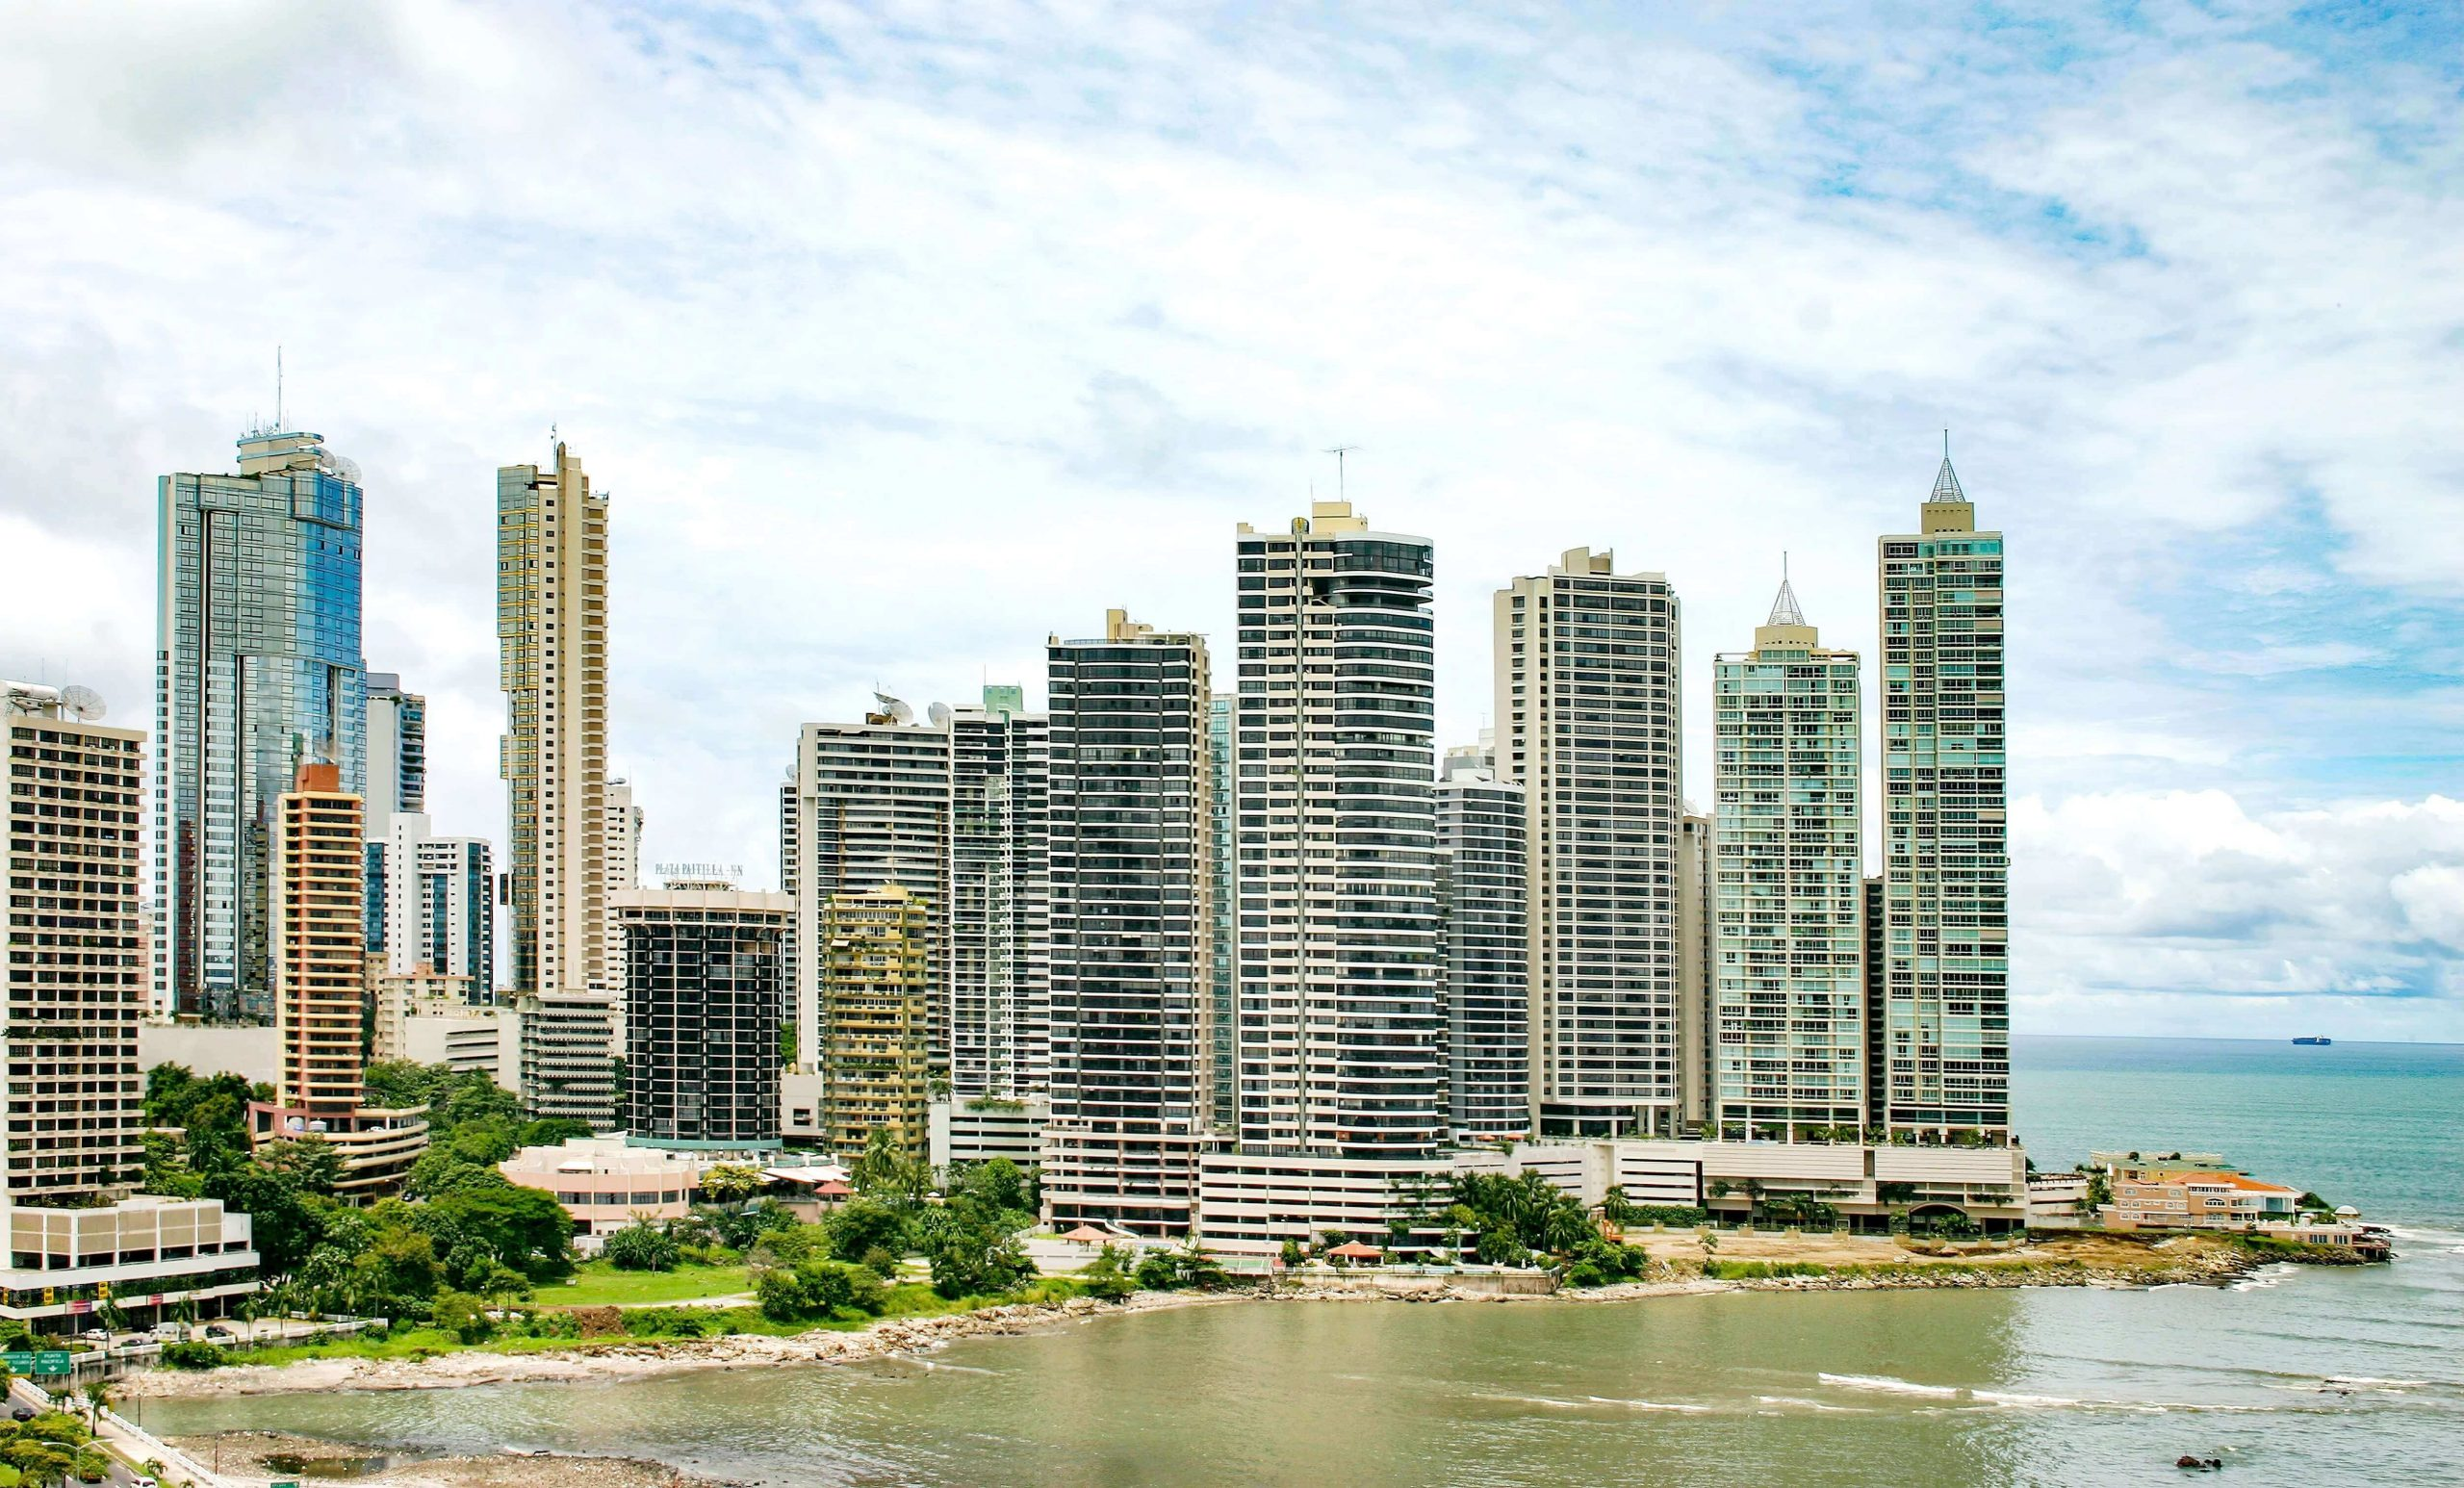 Remote working spots for Panama City digital nomads